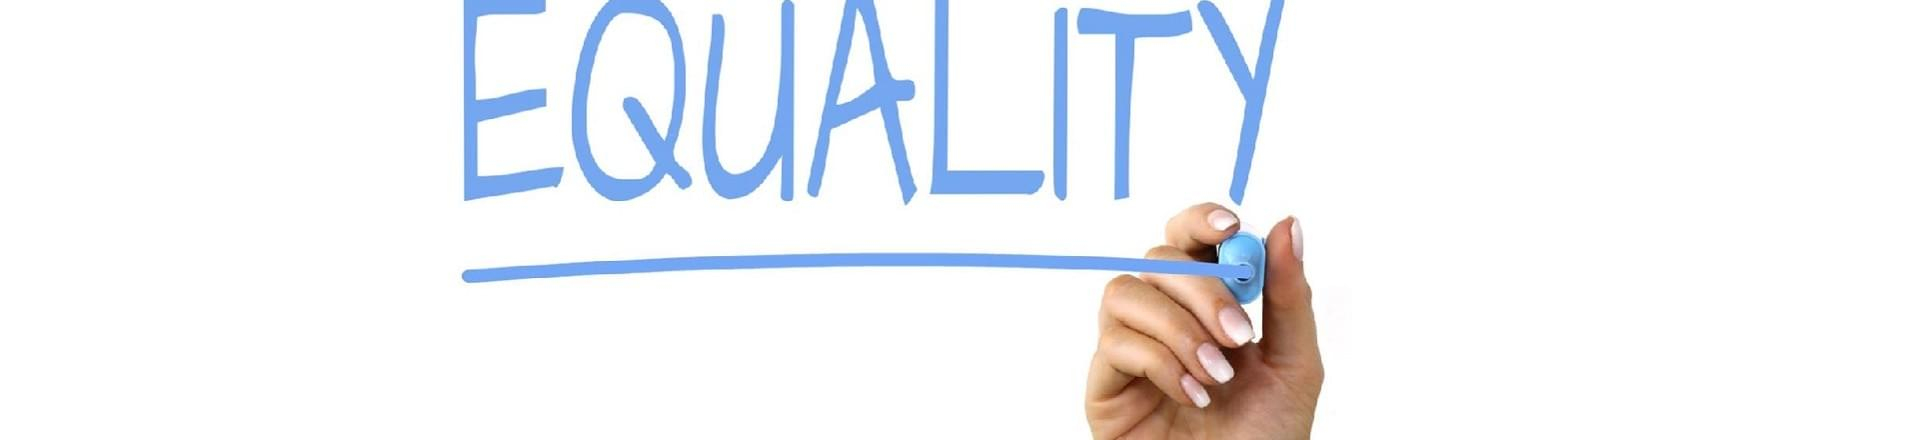 Acas launches new equality guide on avoiding discrimination in the workplace